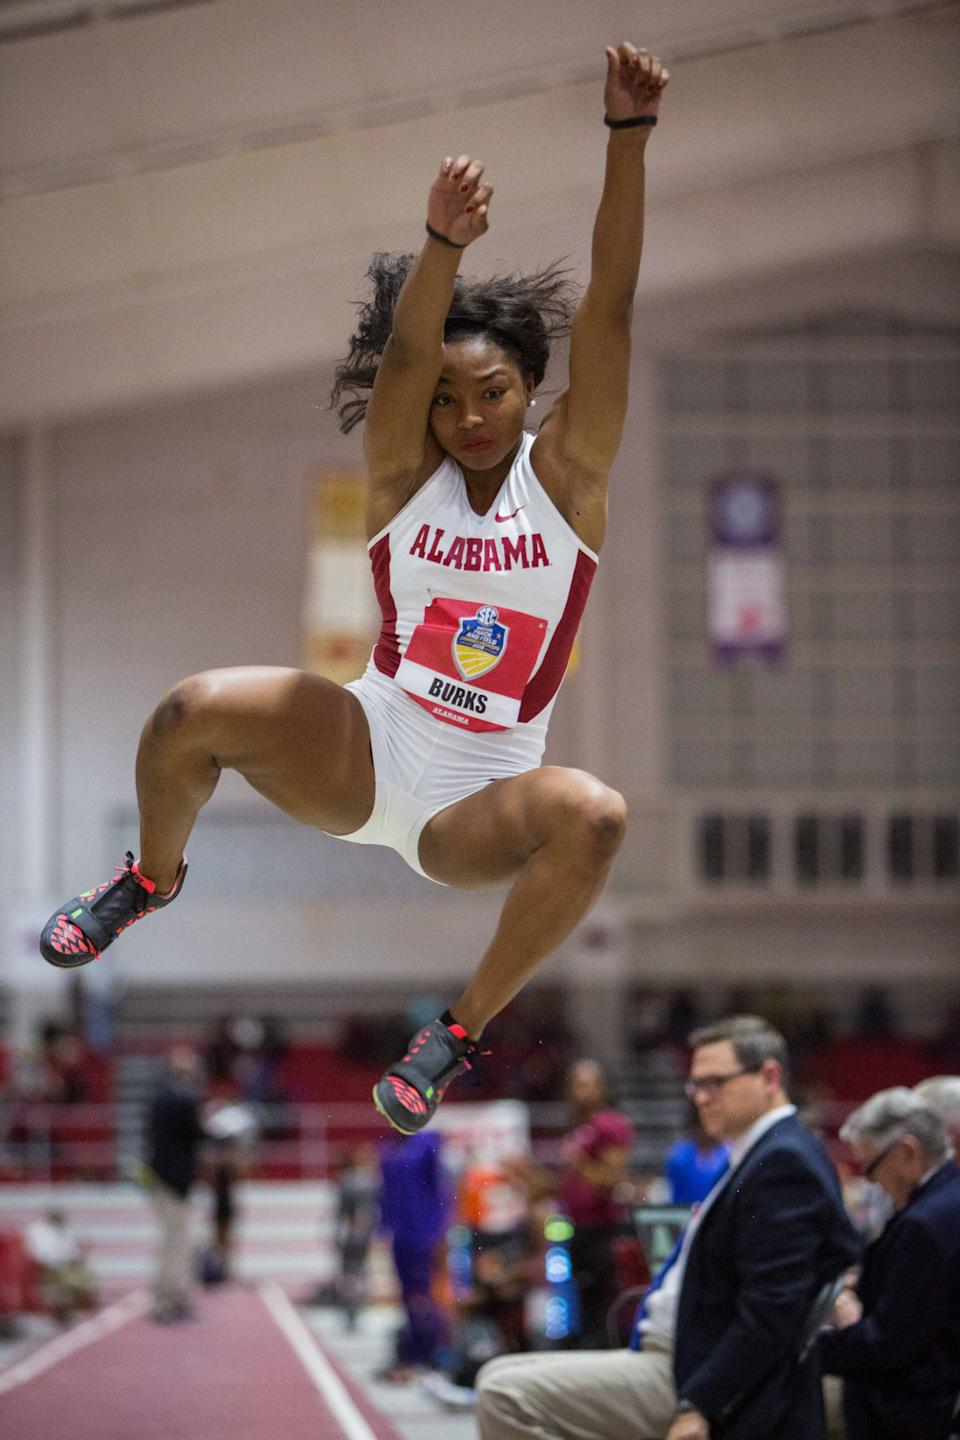 Alabama's Quanesha Burks competes in the long jump during the Southeastern Conference indoor track and field championships Friday, Feb. 26, 2016, in Fayetteville, Ark. (AP Photo/Gunnar Rathbun)